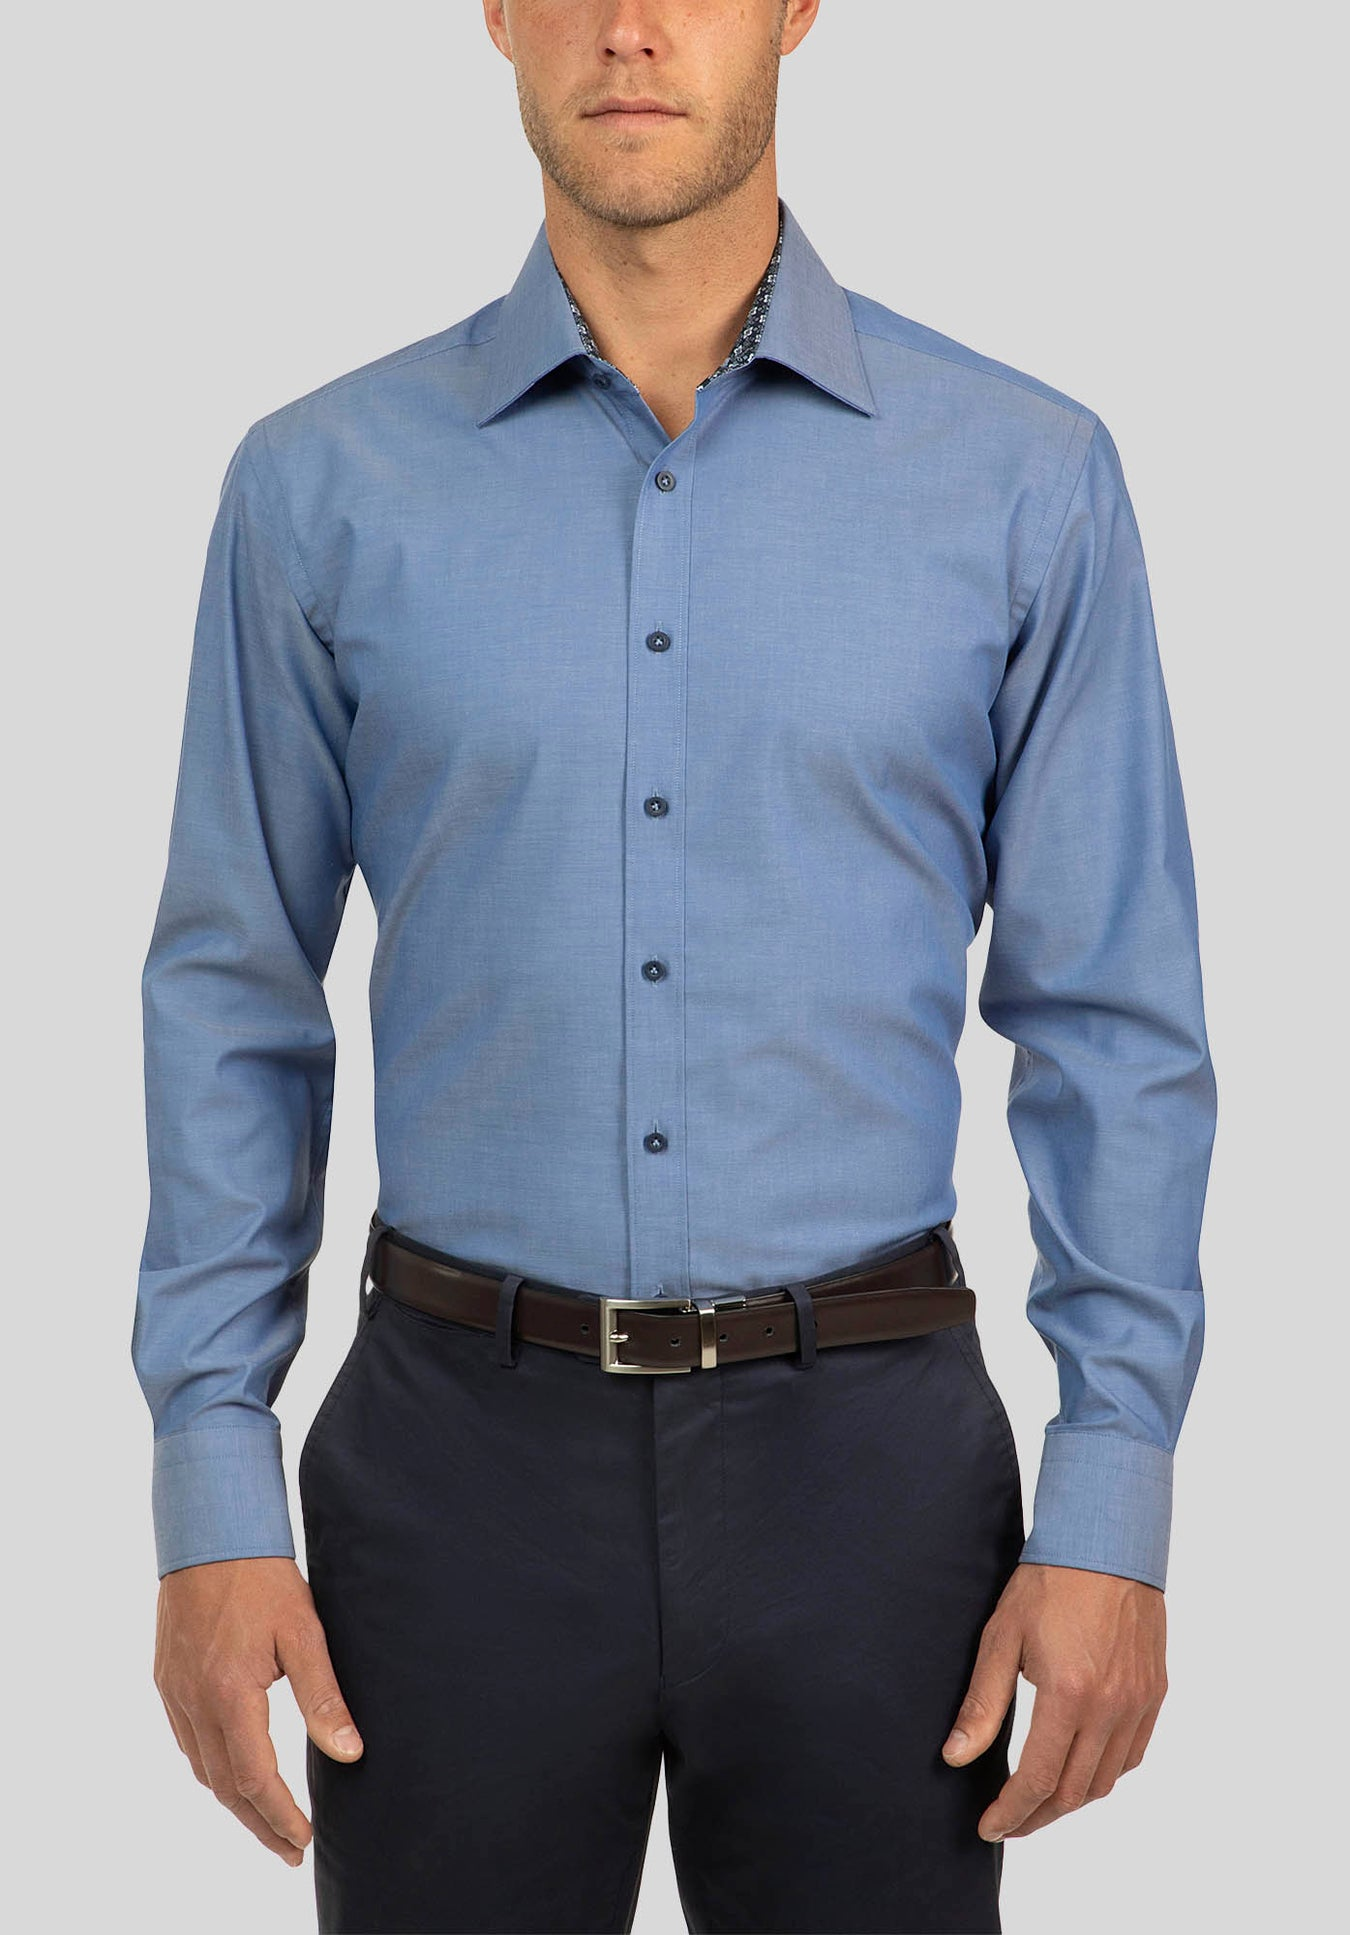 CARLTON SHIRT FCJ356 - Blue